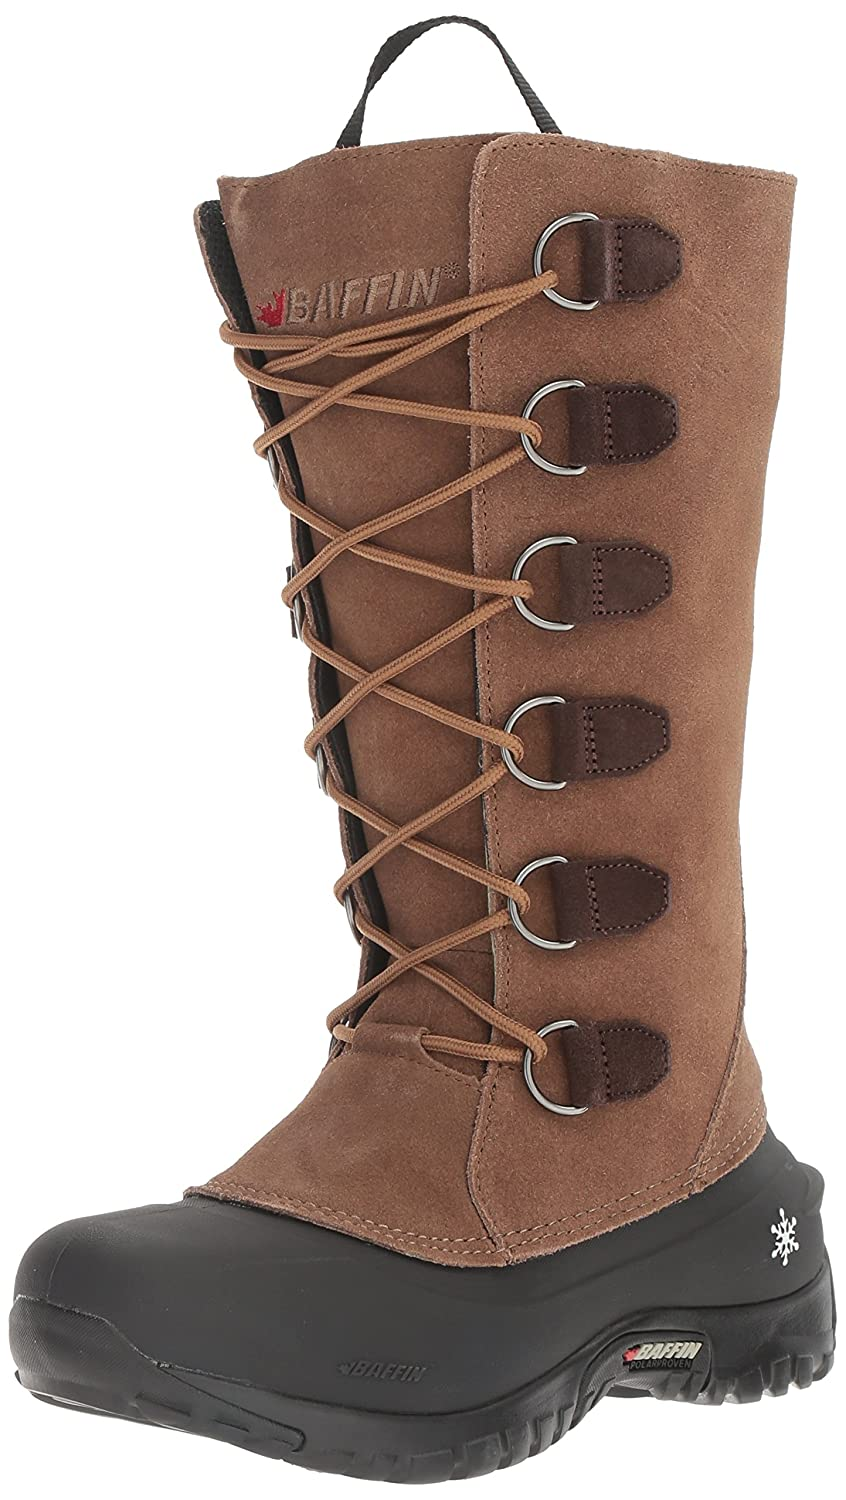 Baffin Women's Coco Insulated Suede Winter Boot B00HNTP1KK 9 B(M) US|Taupe